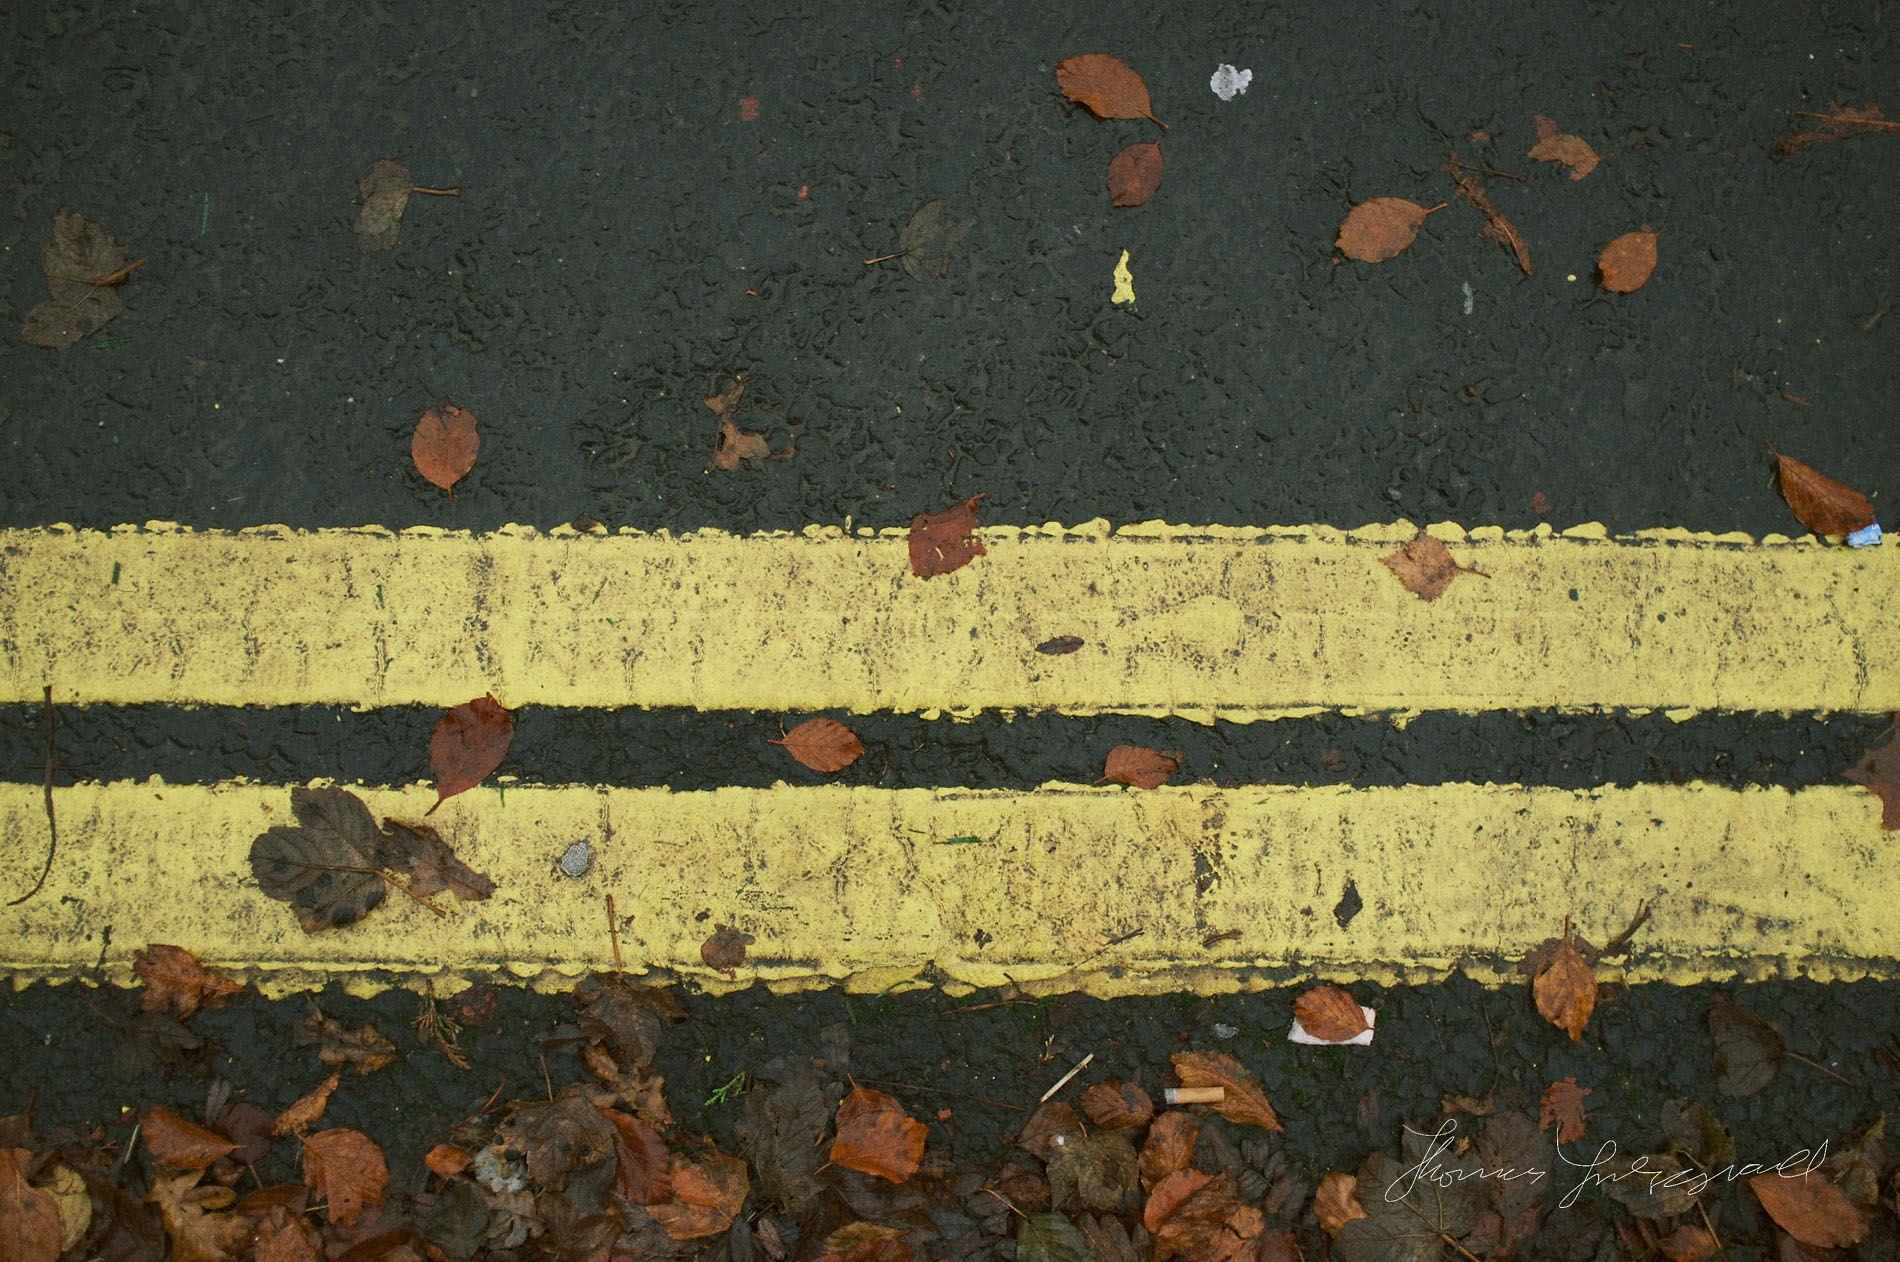 Road markings and fallen leaves